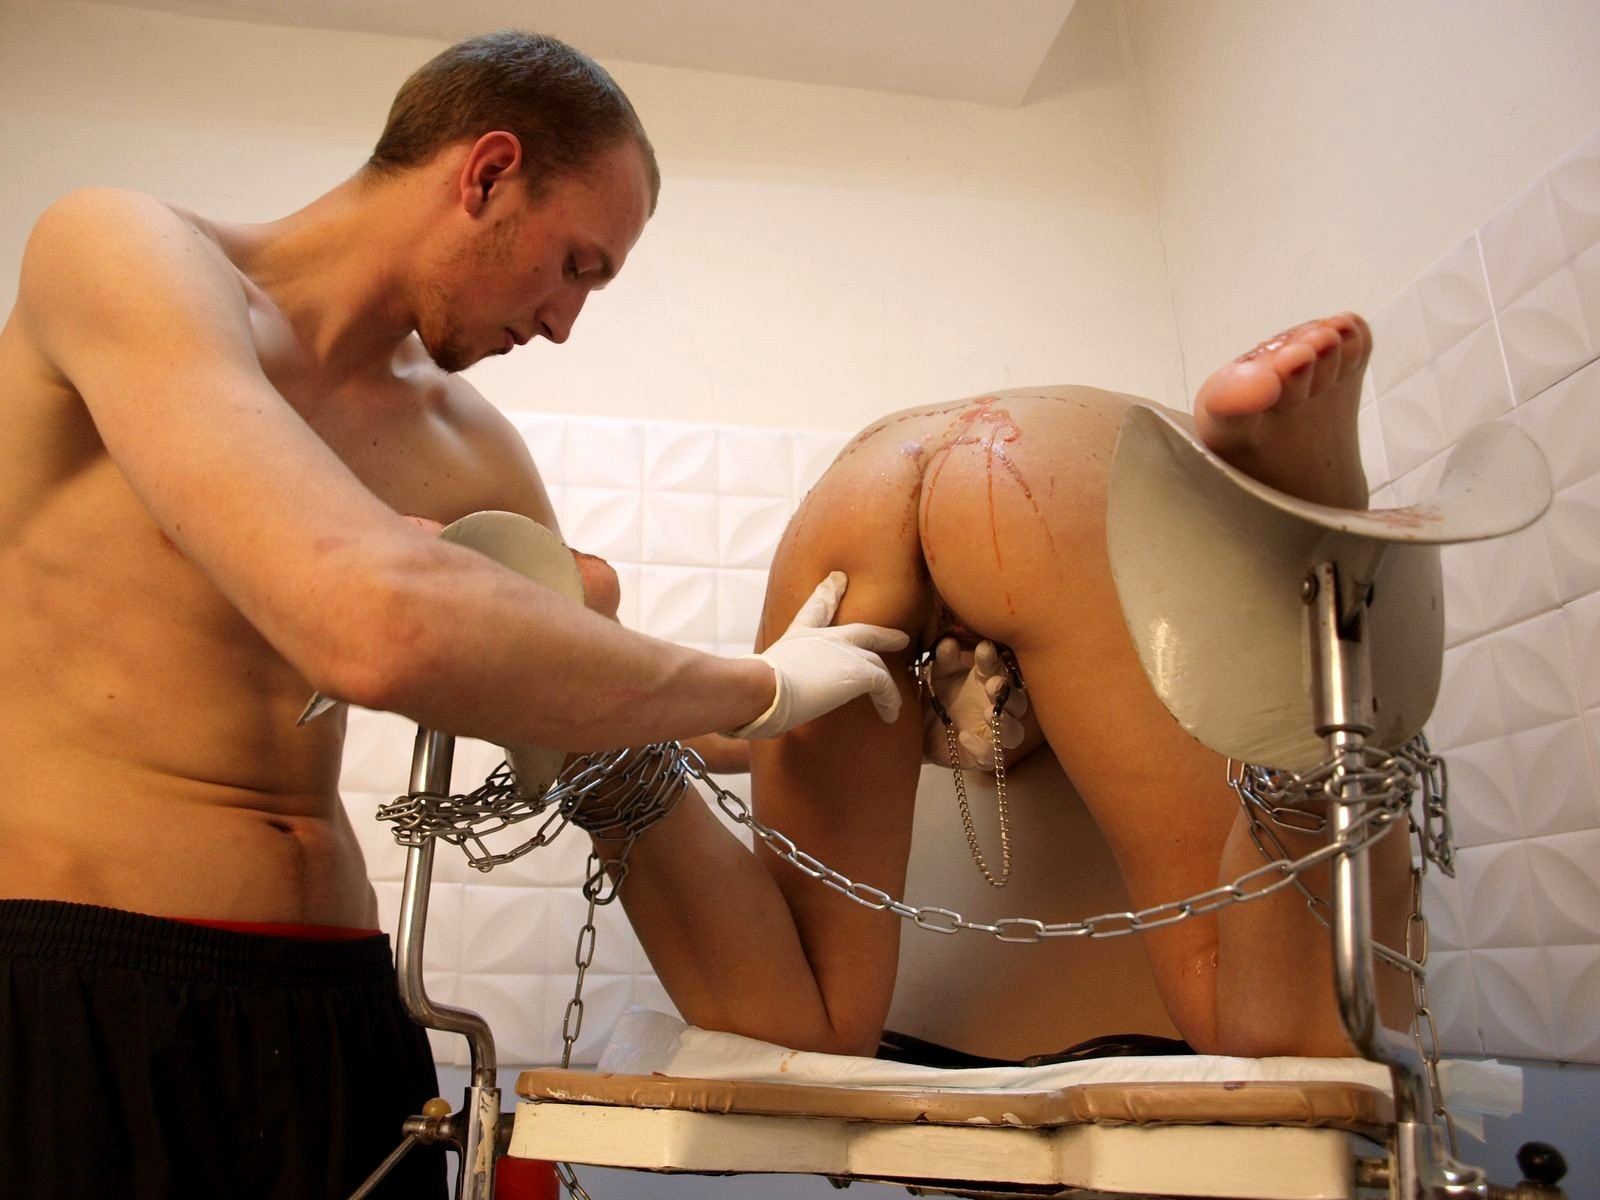 Forced medical examination with semen sample extraction